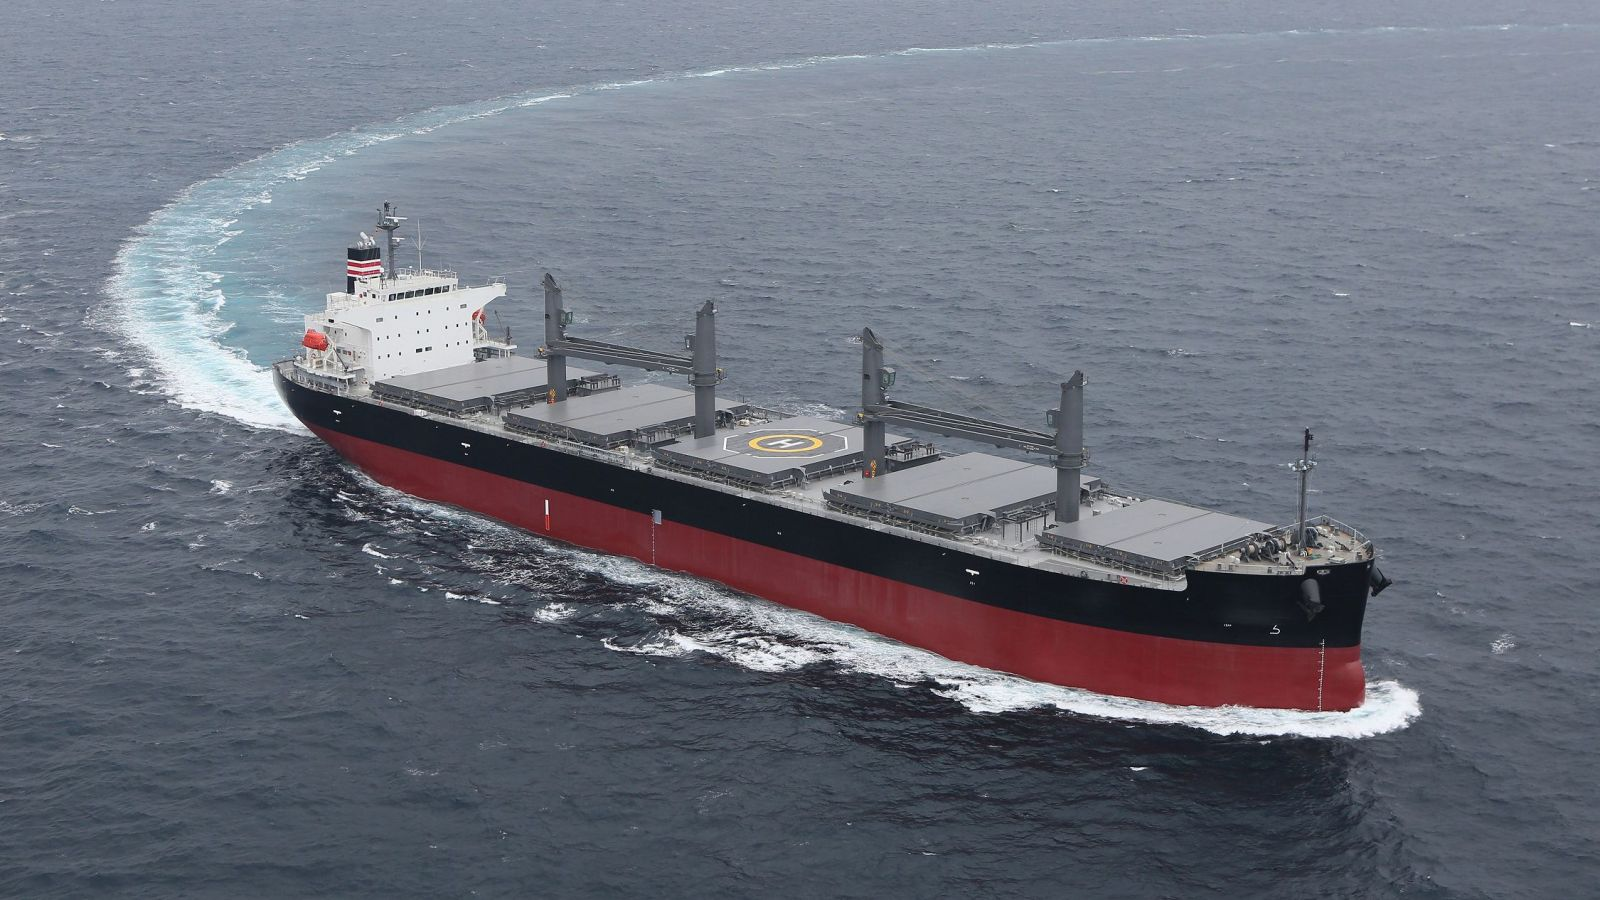 The NYK BP Handymax Bulk Carriers which will be equipped with W?rtsil? scrubbers to be built at Oshima Shipyard - image courtesy of NYK BP